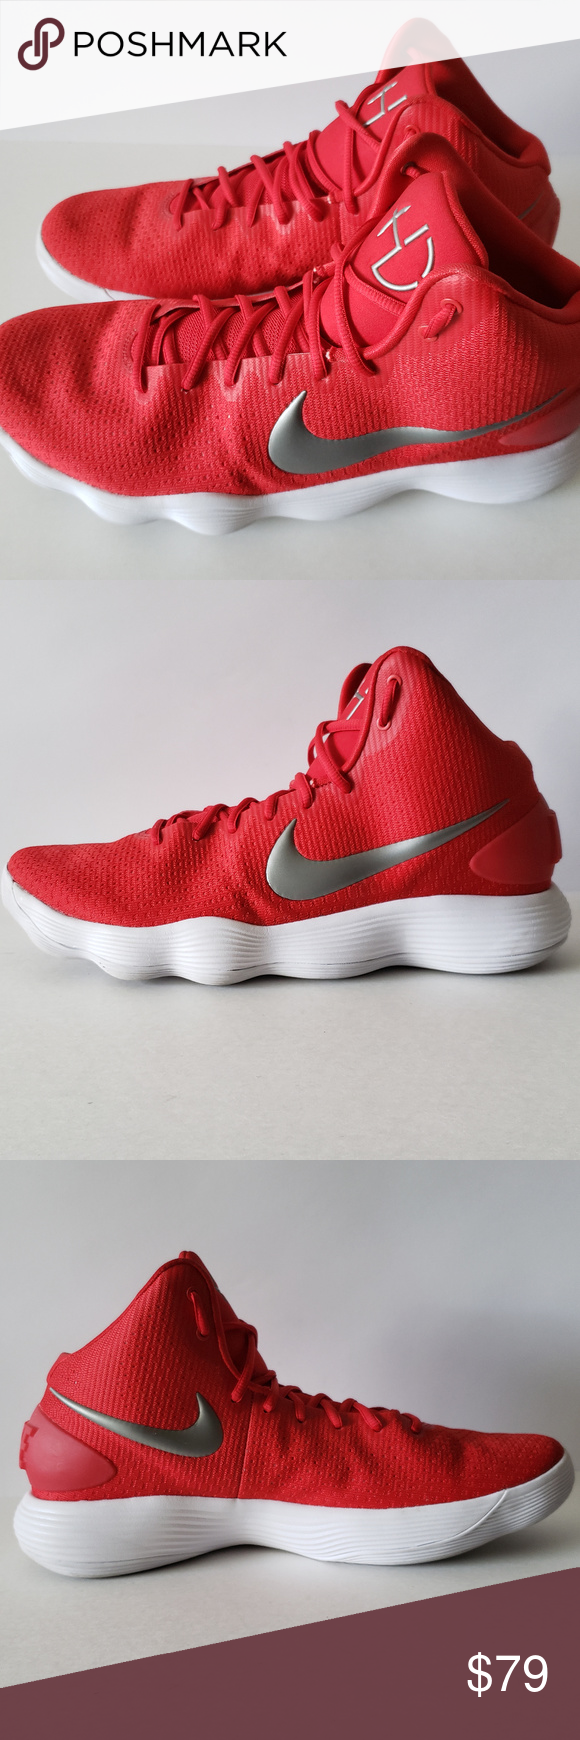 d60c24f1383 Nike React Hyperdunk 2017 TB Basketball Shoes This is an 100% Authentic  Nike React Hyperdunk